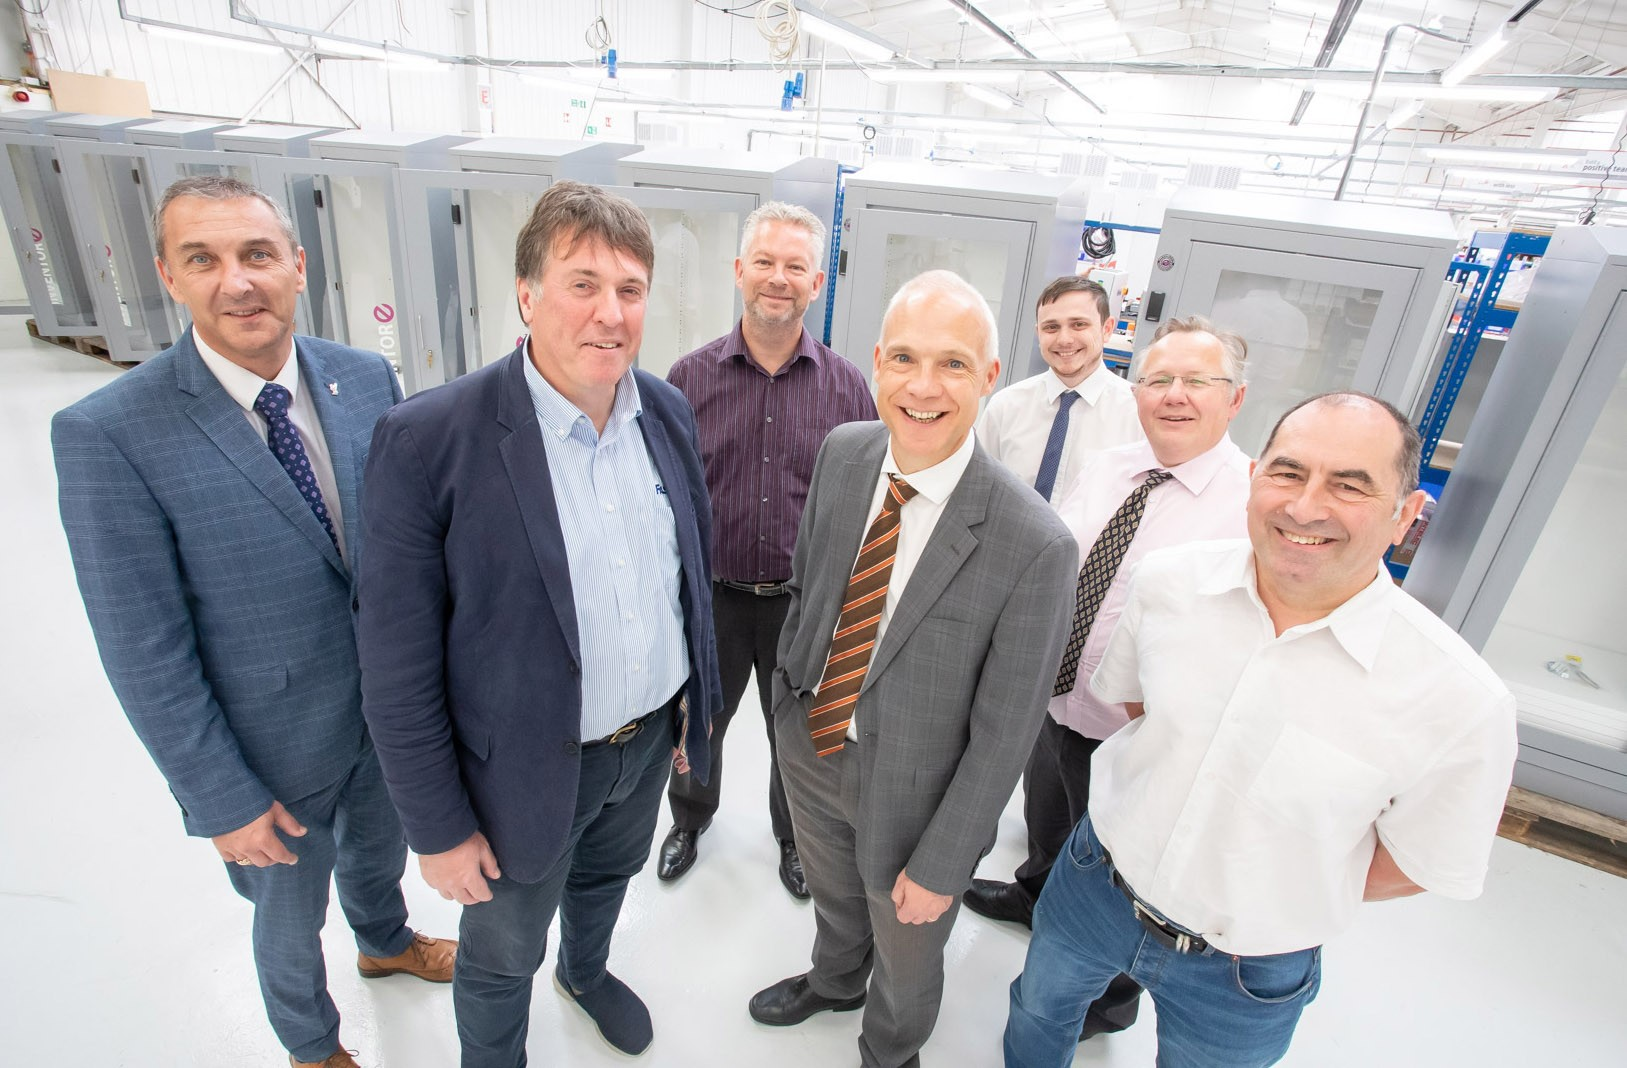 PP's outsourcing manufacturing offer helps Inventor-e create ten jobs as part of its 60% growth » Inventor e PR Group L » PP Control & Automation